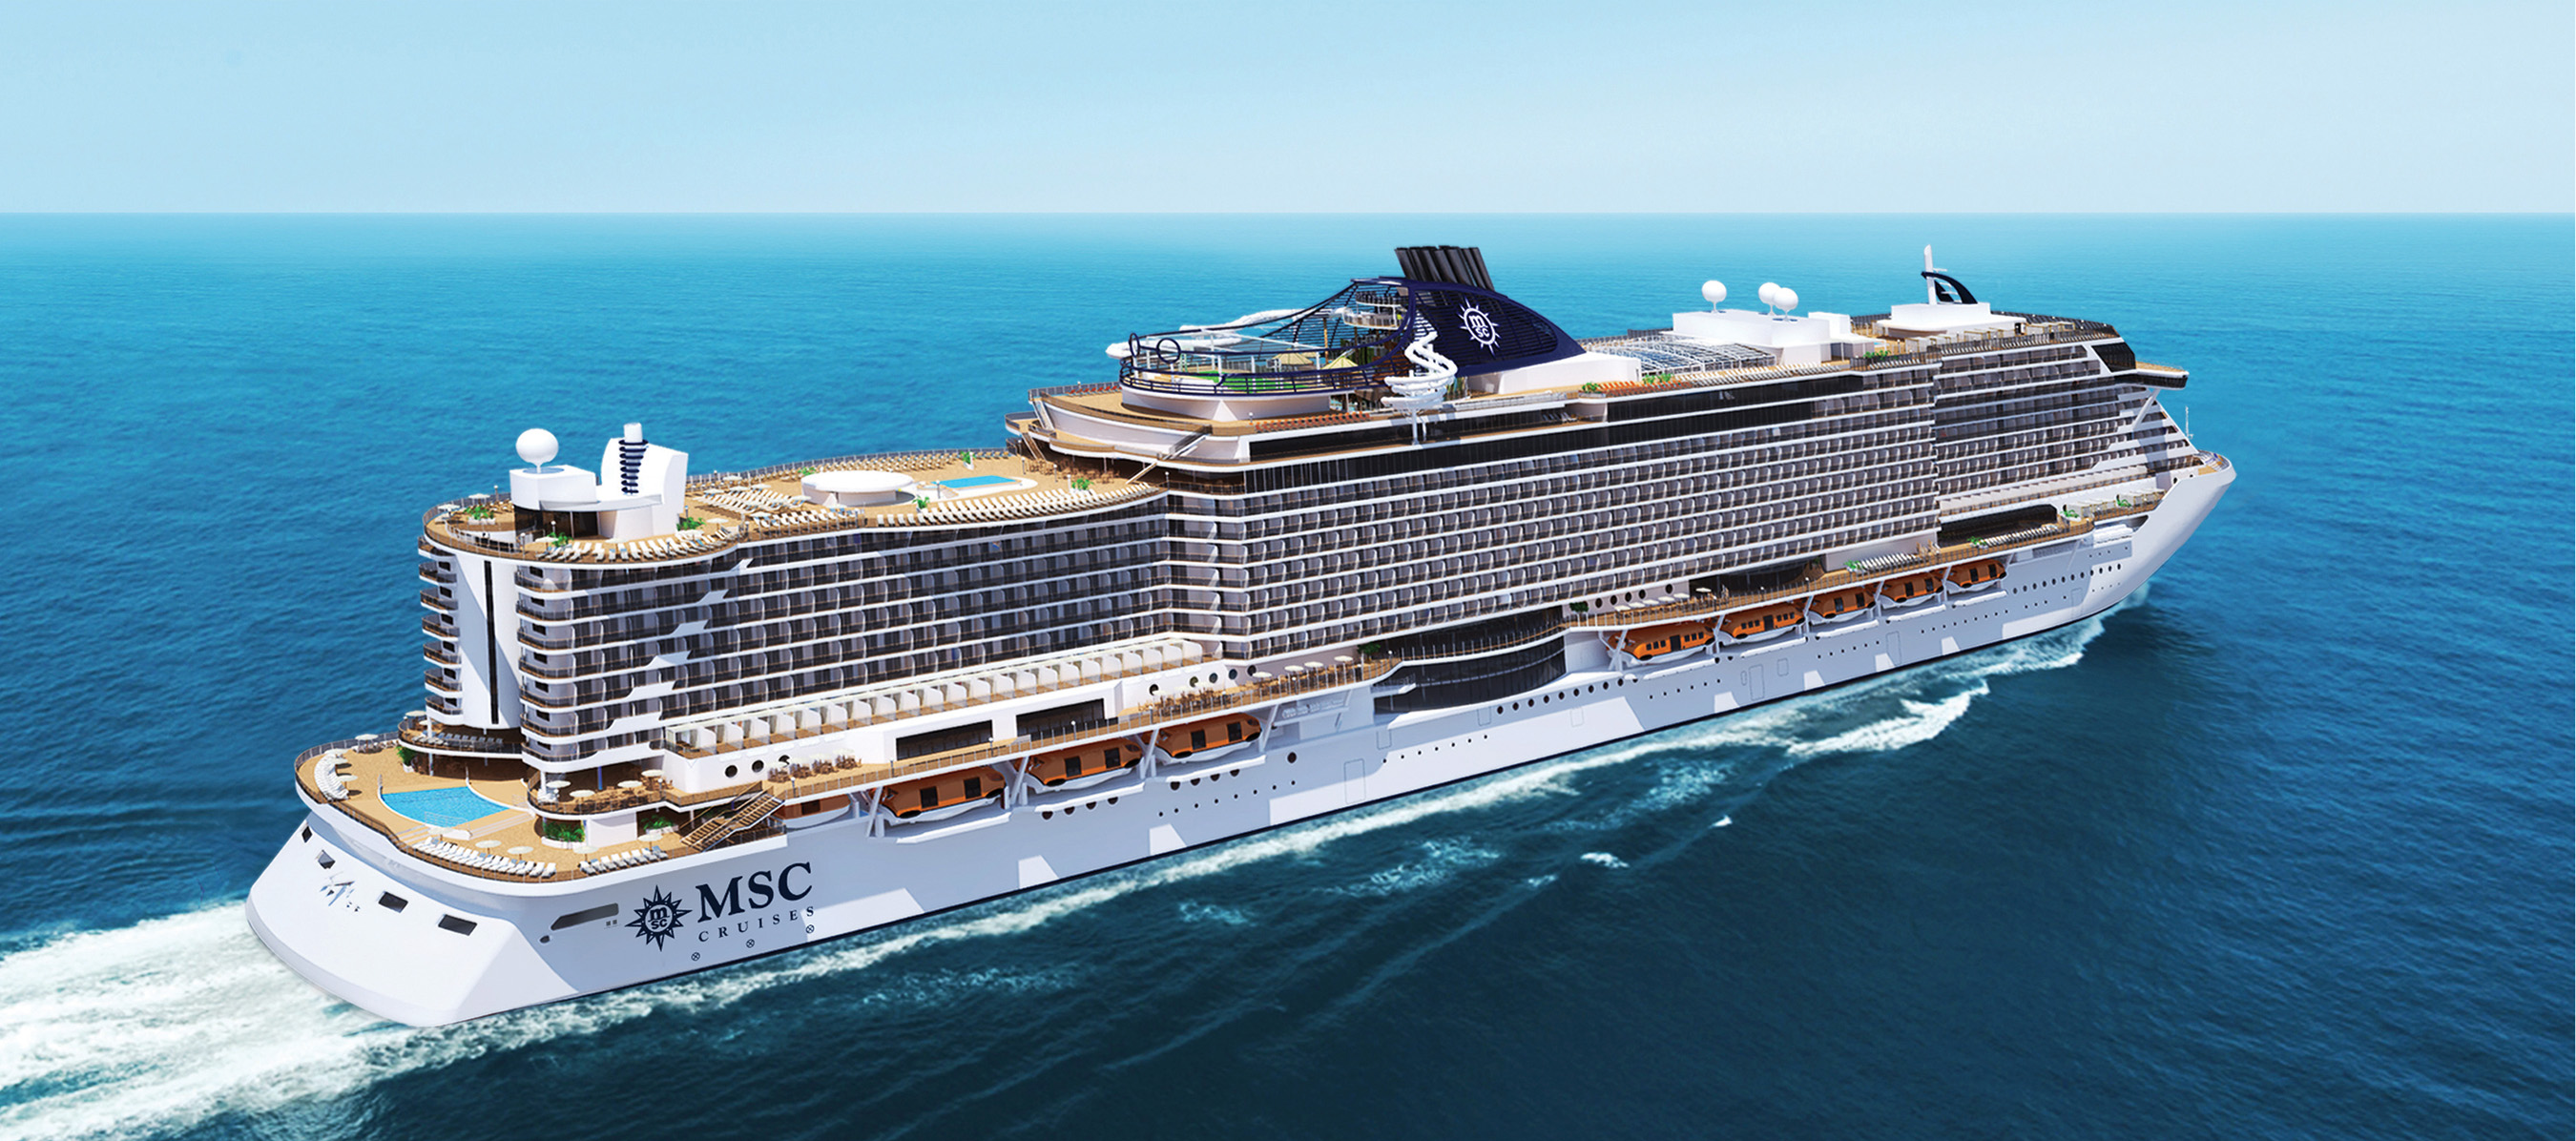 http://www.multivu.com/players/English/7473951-msc-cruises-seaside-class-ship/gallery/image/01e2bc78-2555-458e-9afb-0a281238d543.HR.jpg